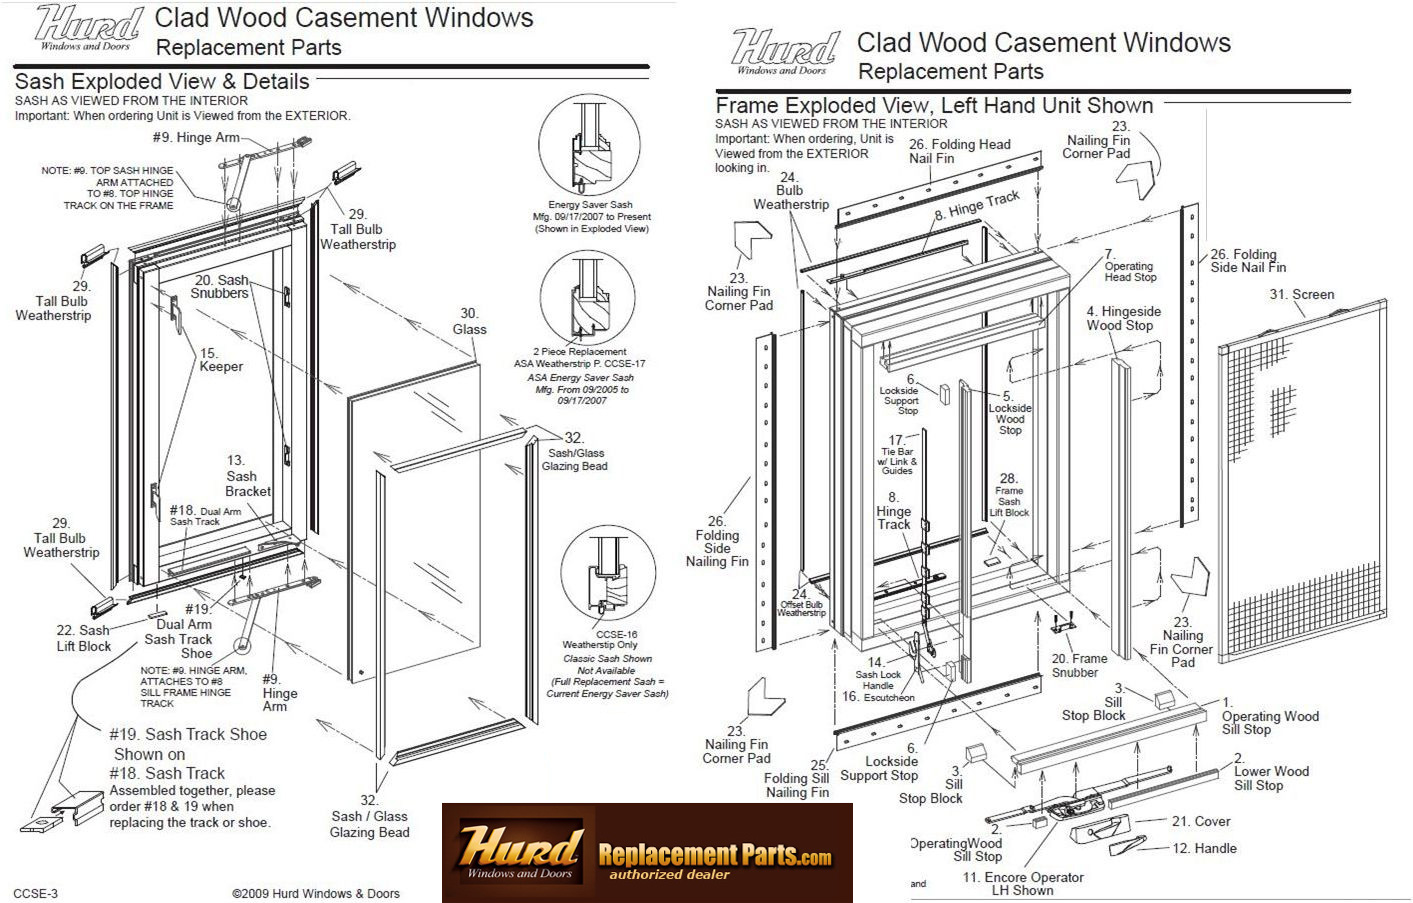 Window Replacement Parts